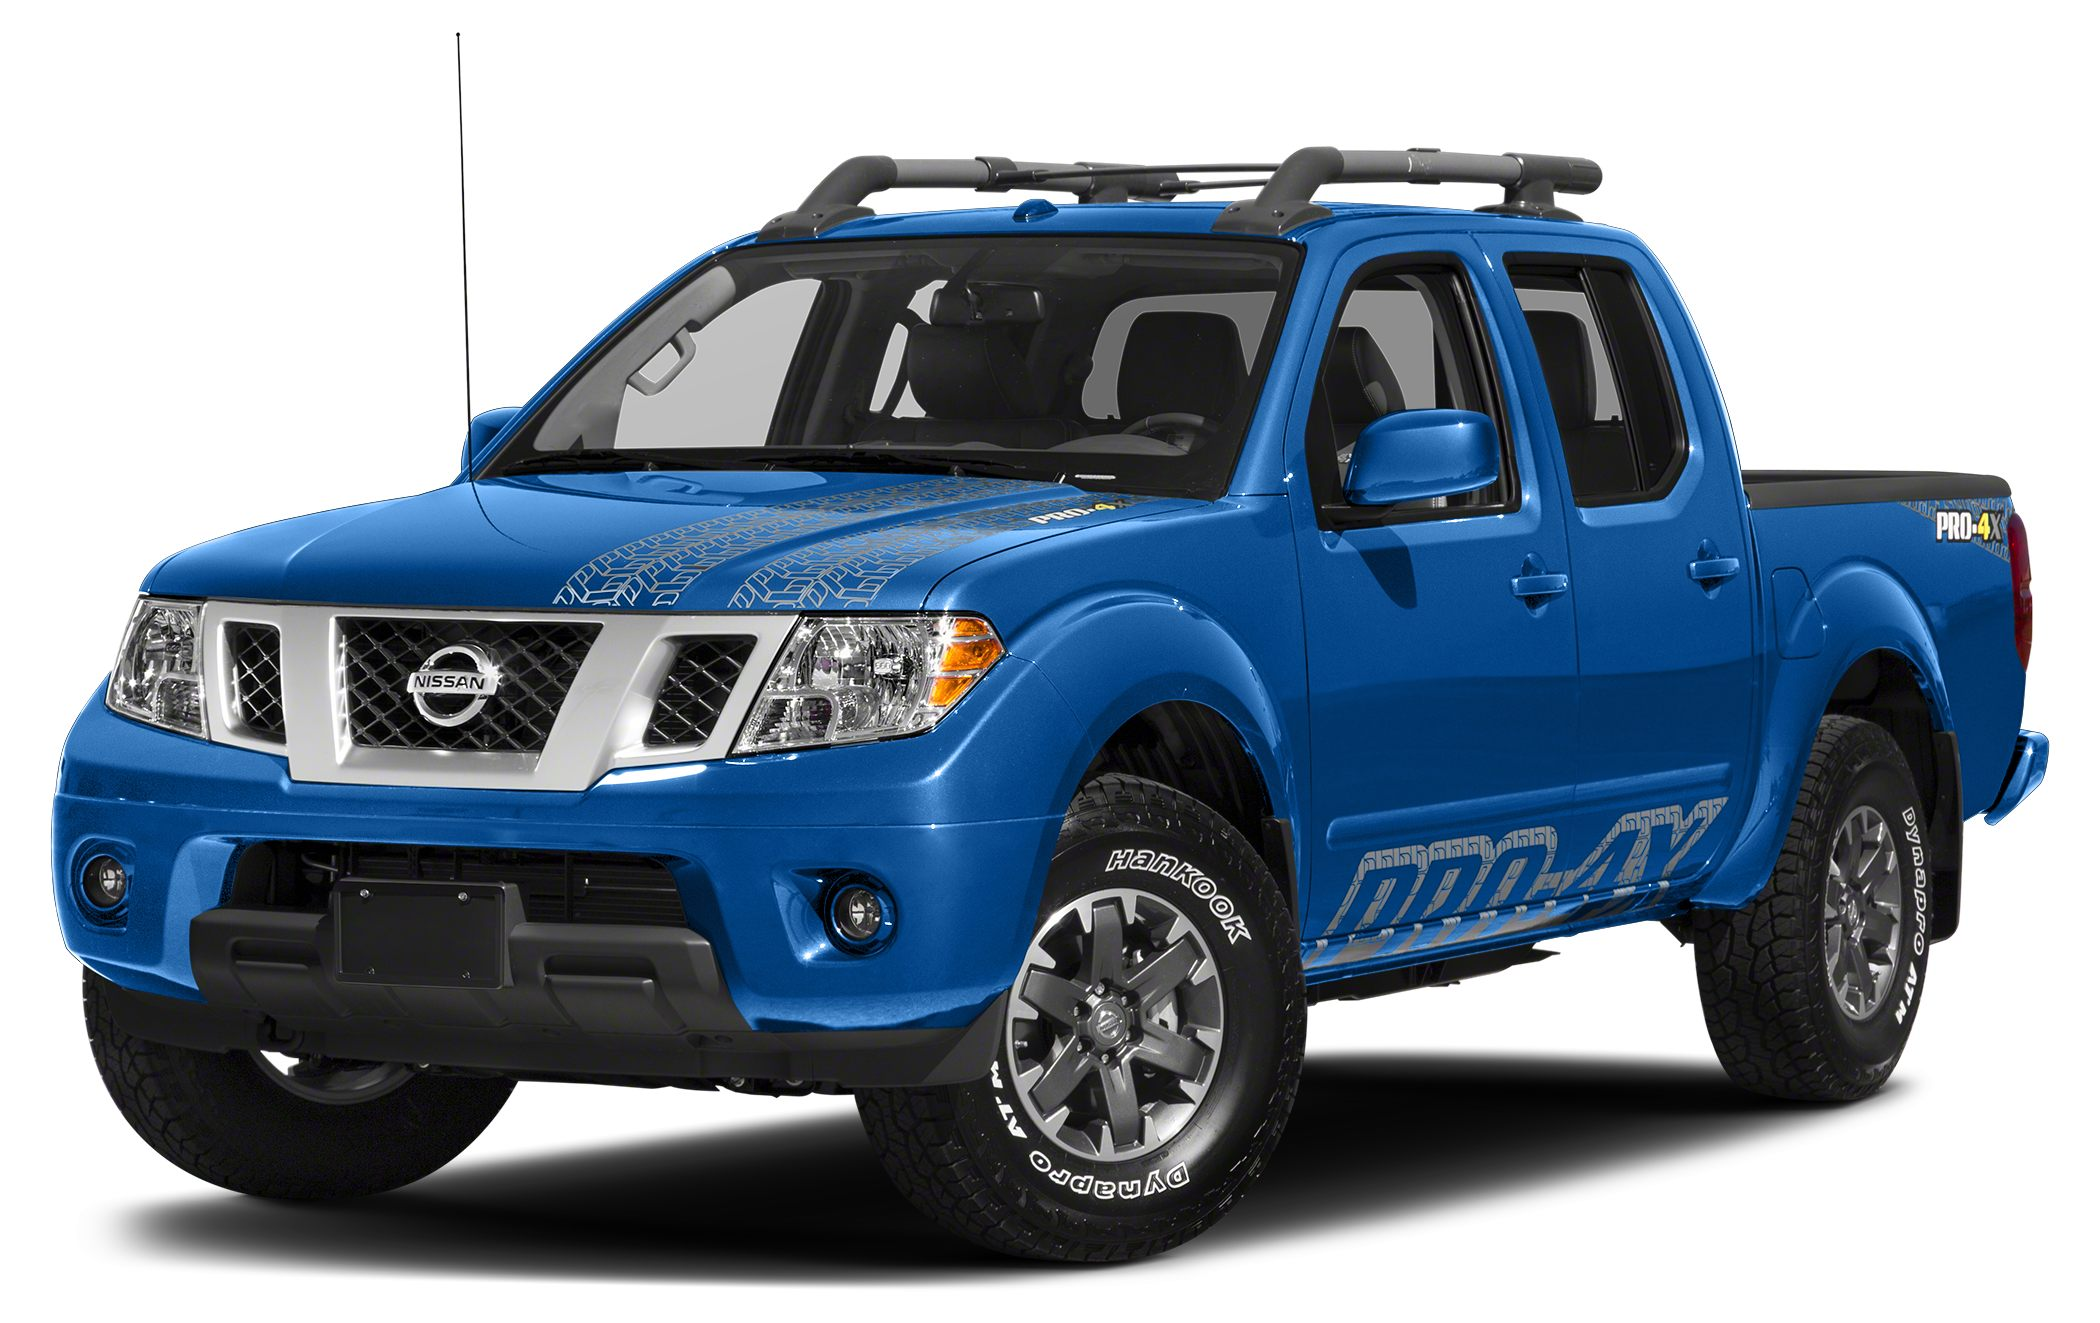 2015 Nissan Frontier PRO-4X CARFAX 1-Owner ONLY 34903 Miles EPA 21 MPG Hwy16 MPG City Heated